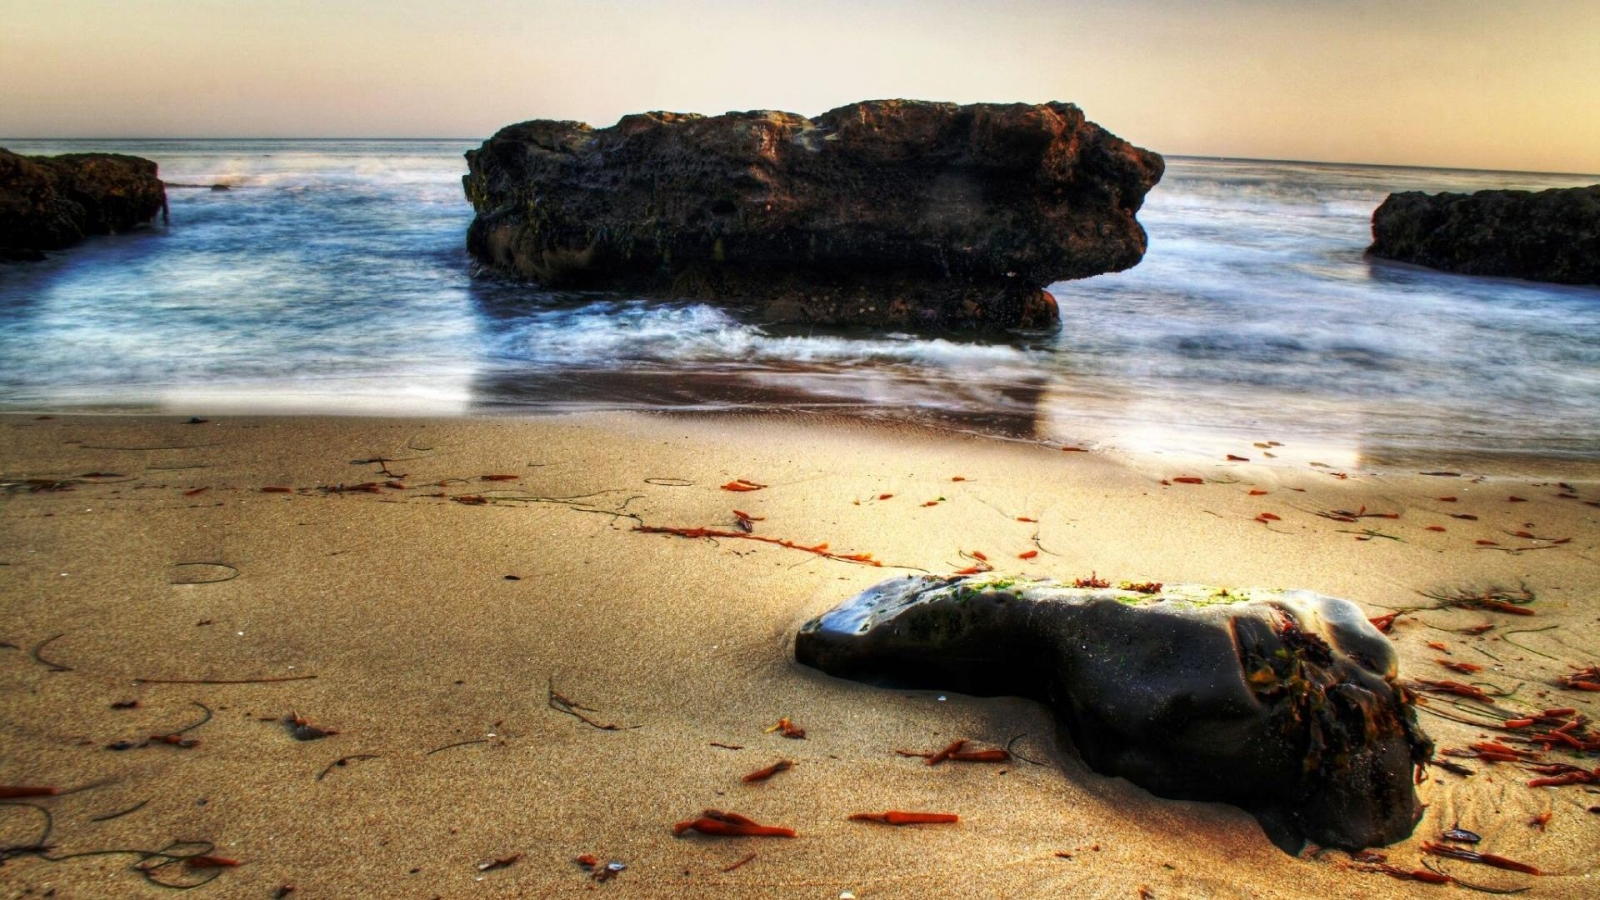 Download Rock in skull shape on beach wallpaper in Nature wallpapers 1779